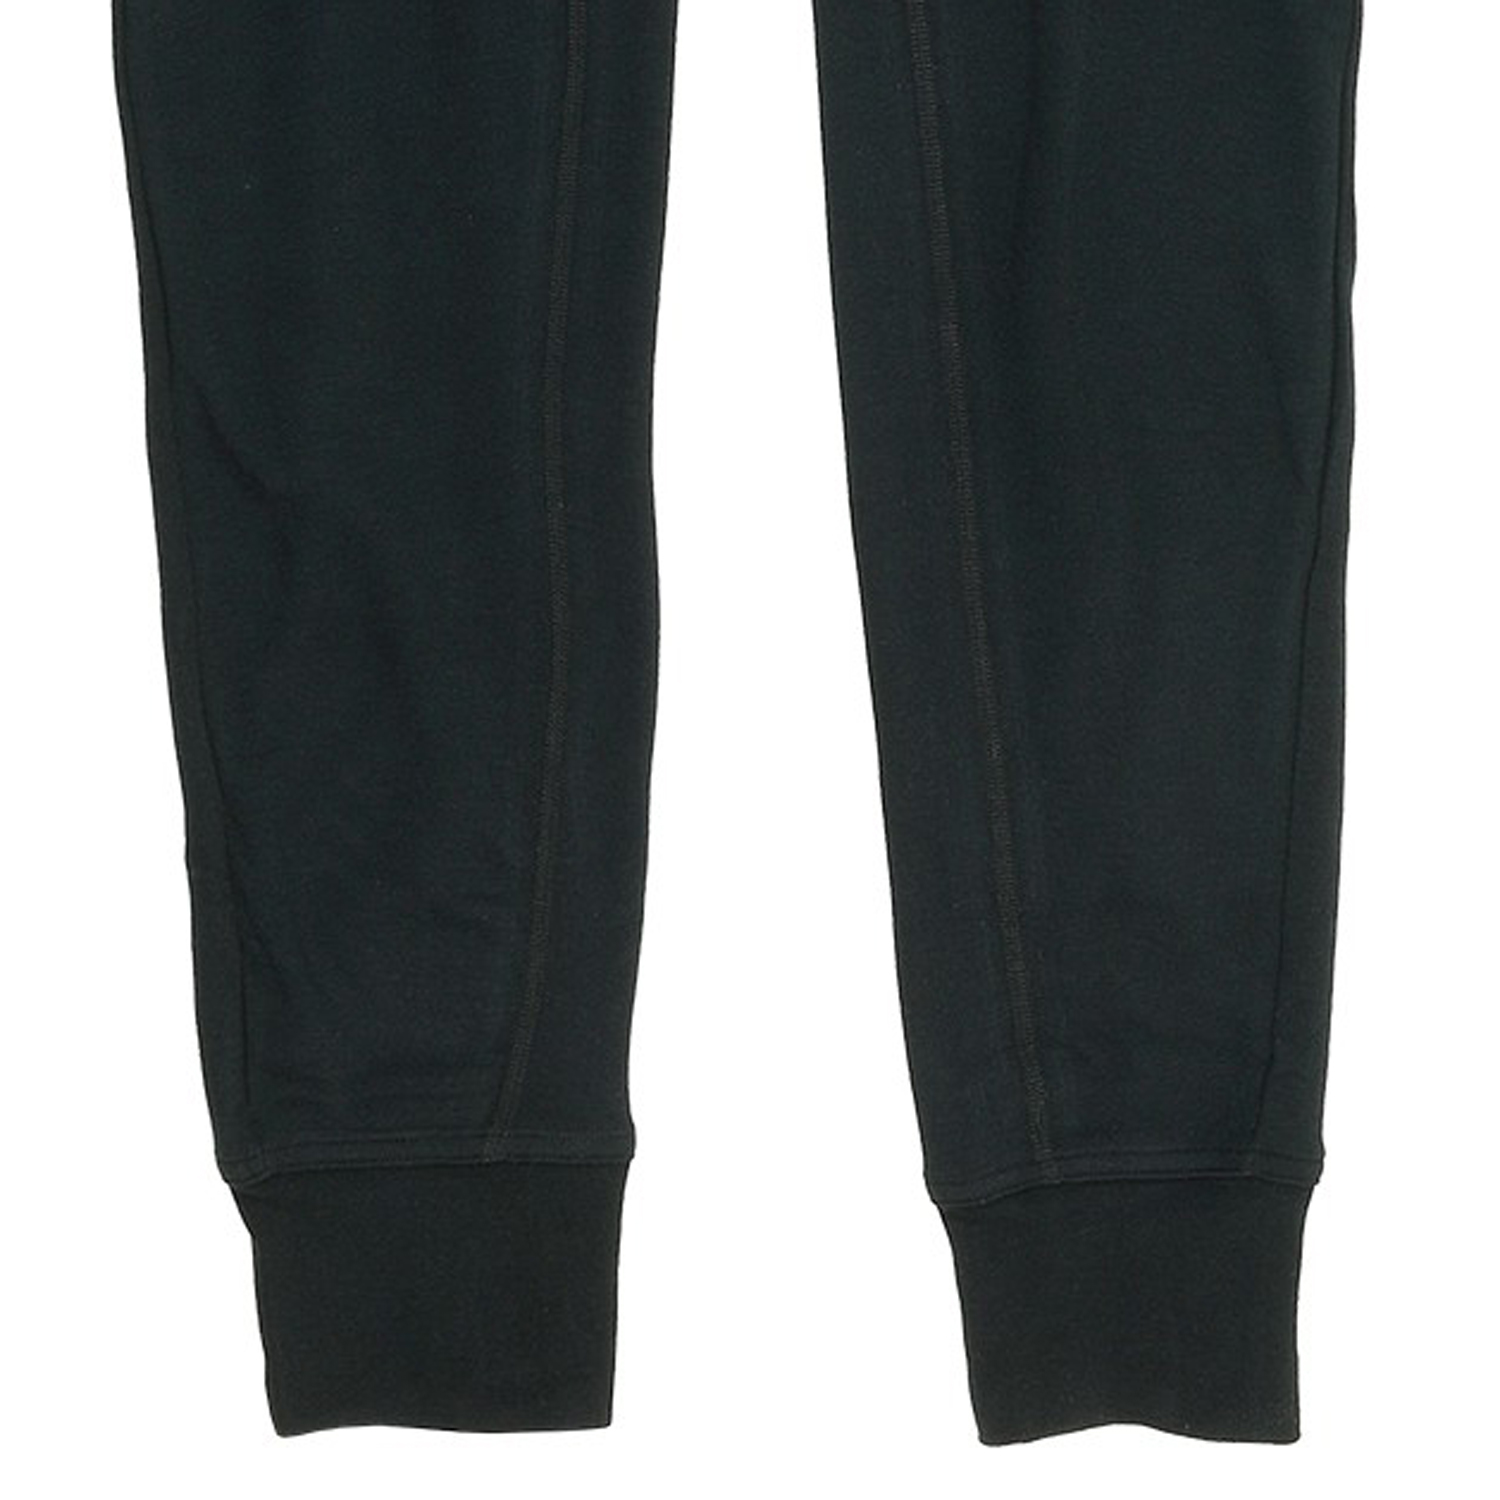 Detail Image to Long underwear from Jockey in black up to size 6XL with fly front